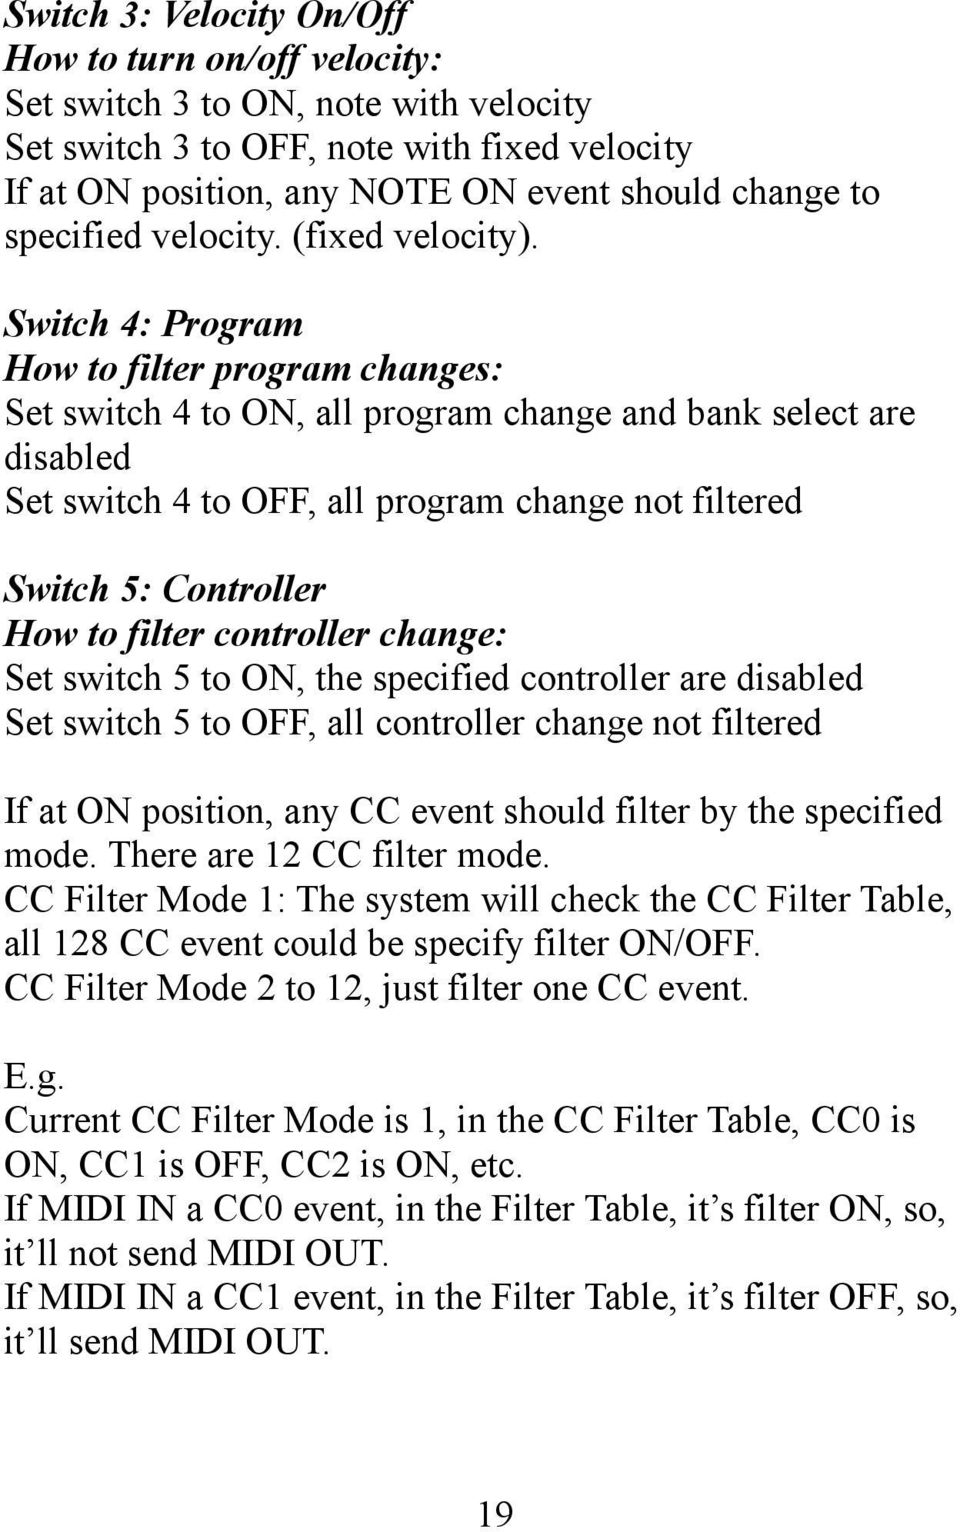 Switch 4: Program How to filter program changes: Set switch 4 to ON, all program change and bank select are disabled Set switch 4 to OFF, all program change not filtered Switch 5: Controller How to